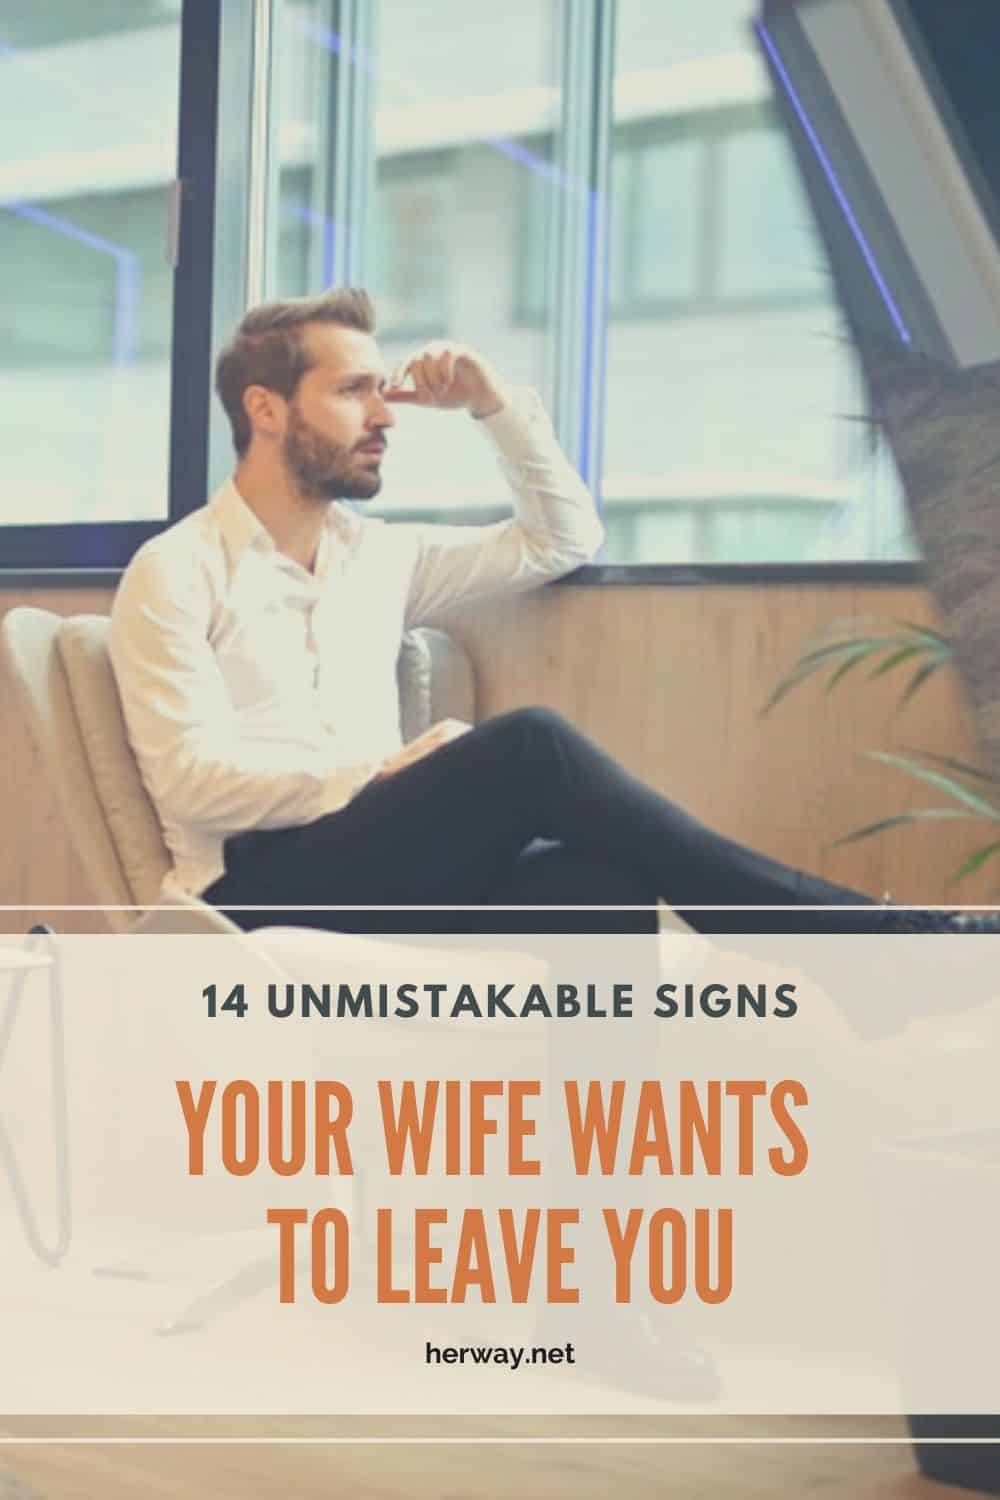 14 Unmistakable Signs Your Wife Wants To Leave You